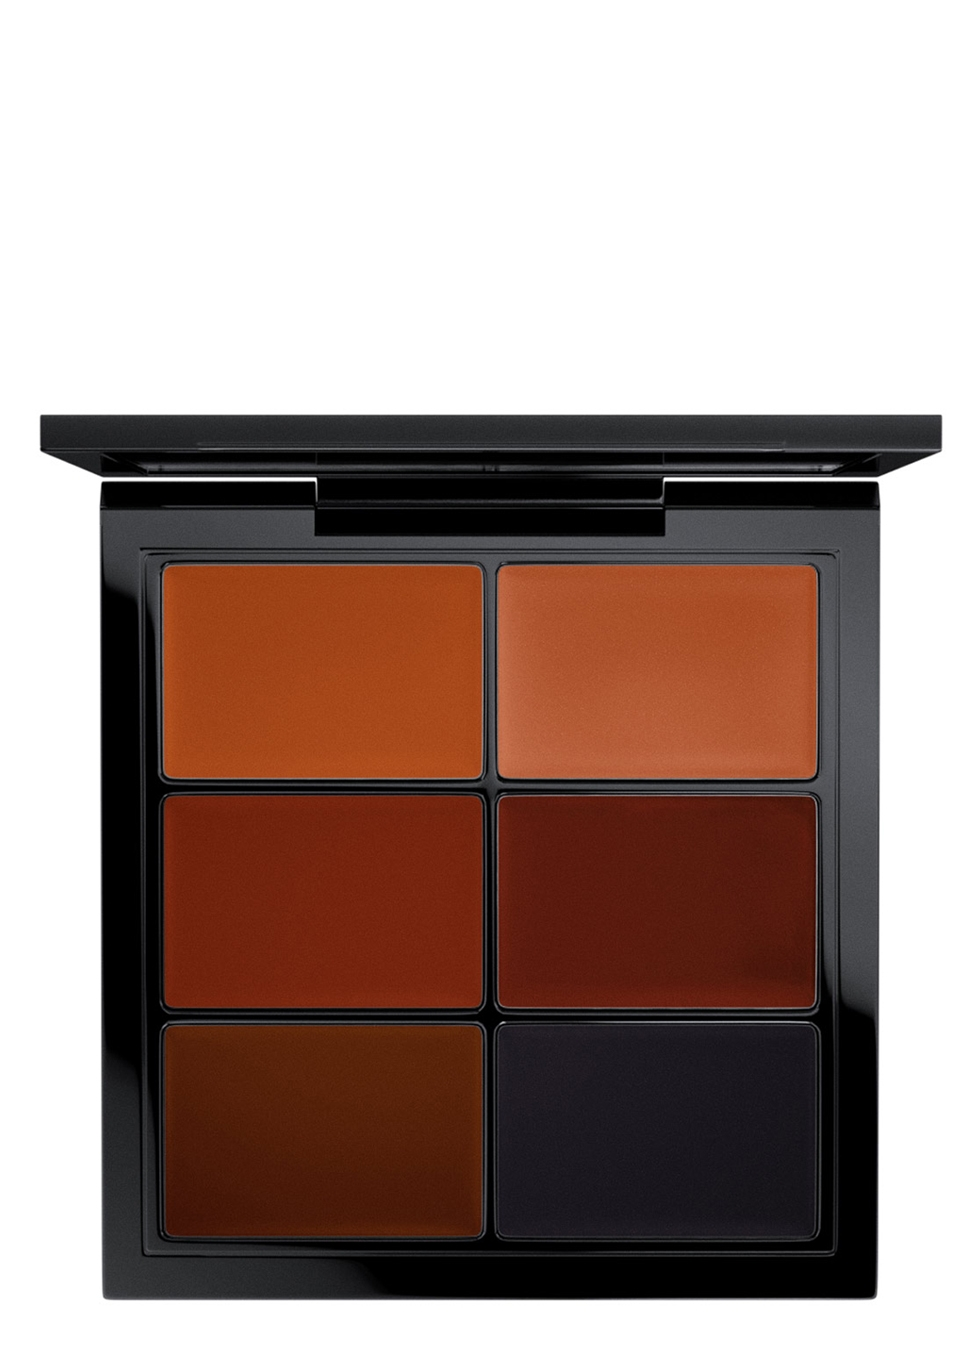 Studio Pro Conceal and Correct Palette